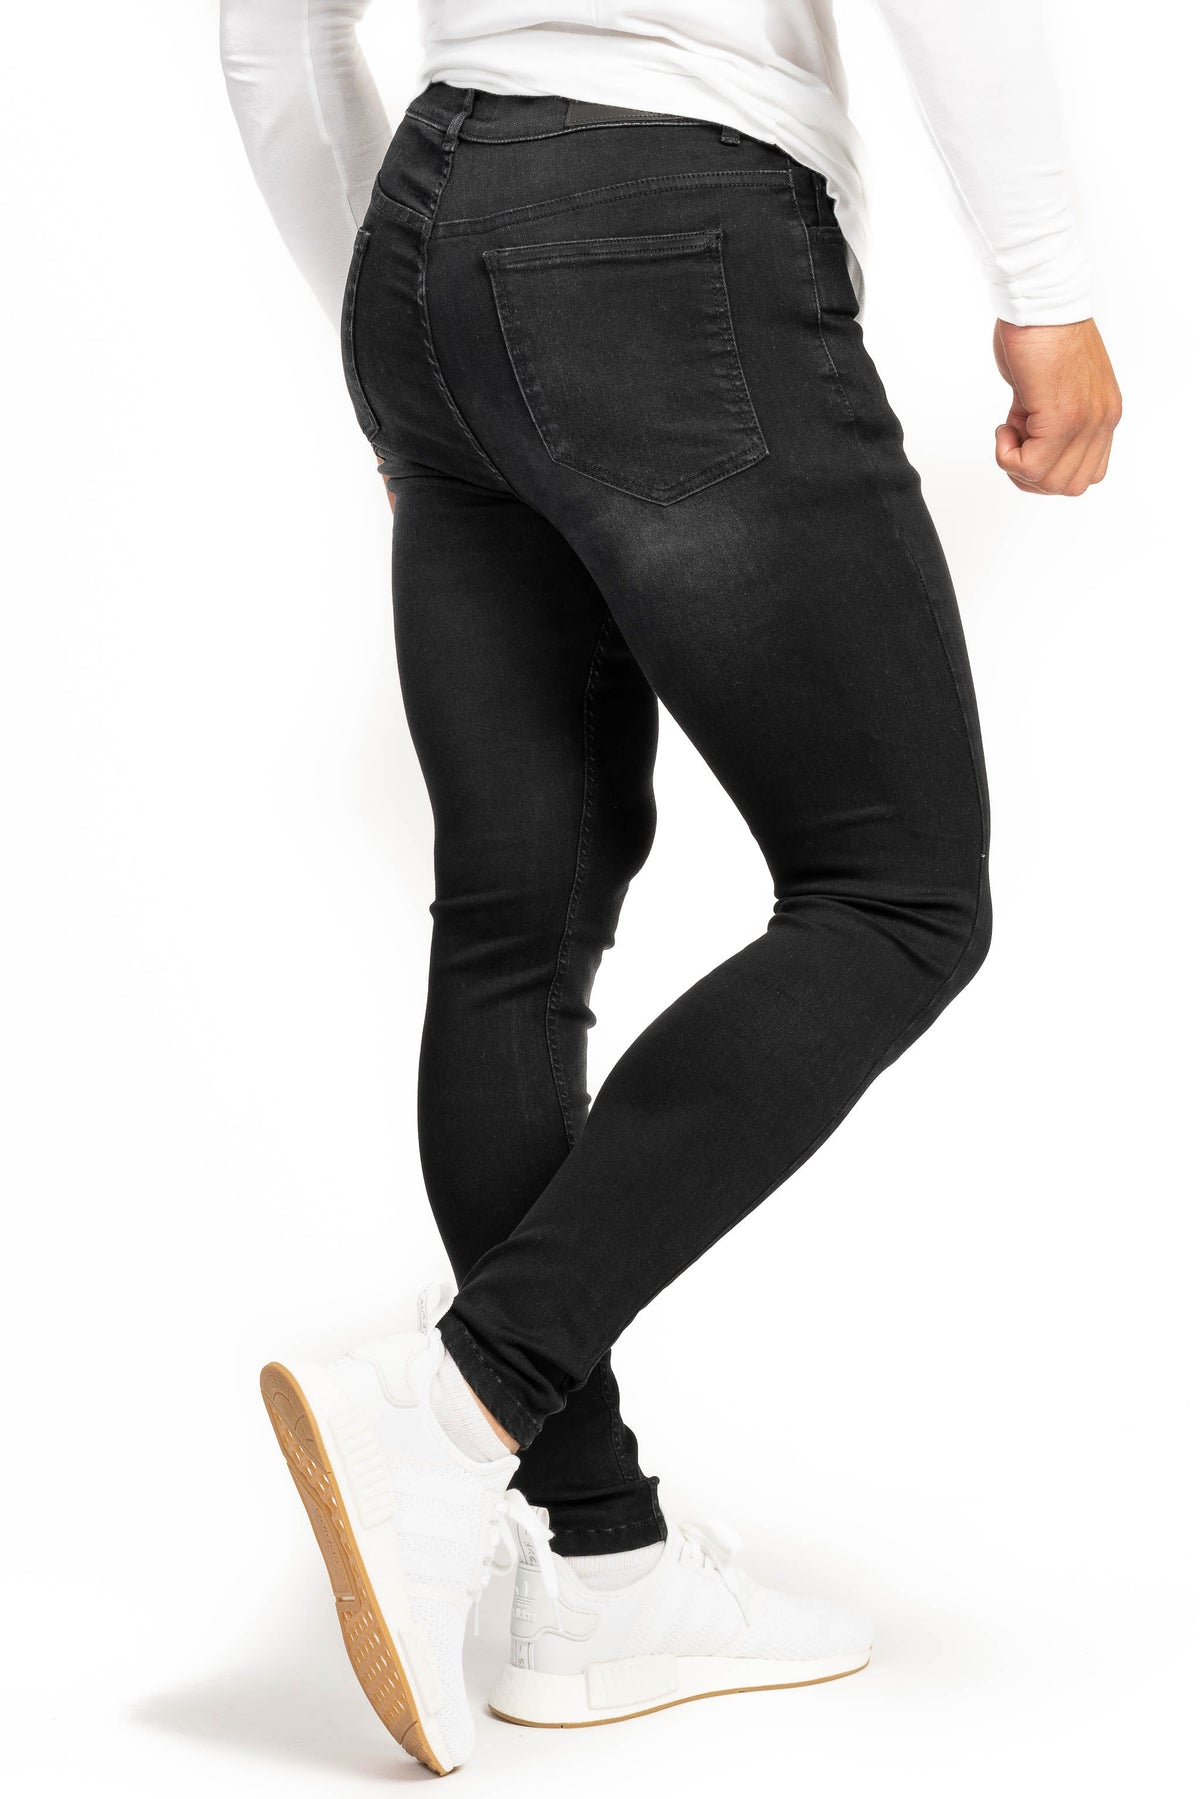 Mens Regular Fitjeans - Grey Shade - Fitjeans Norge